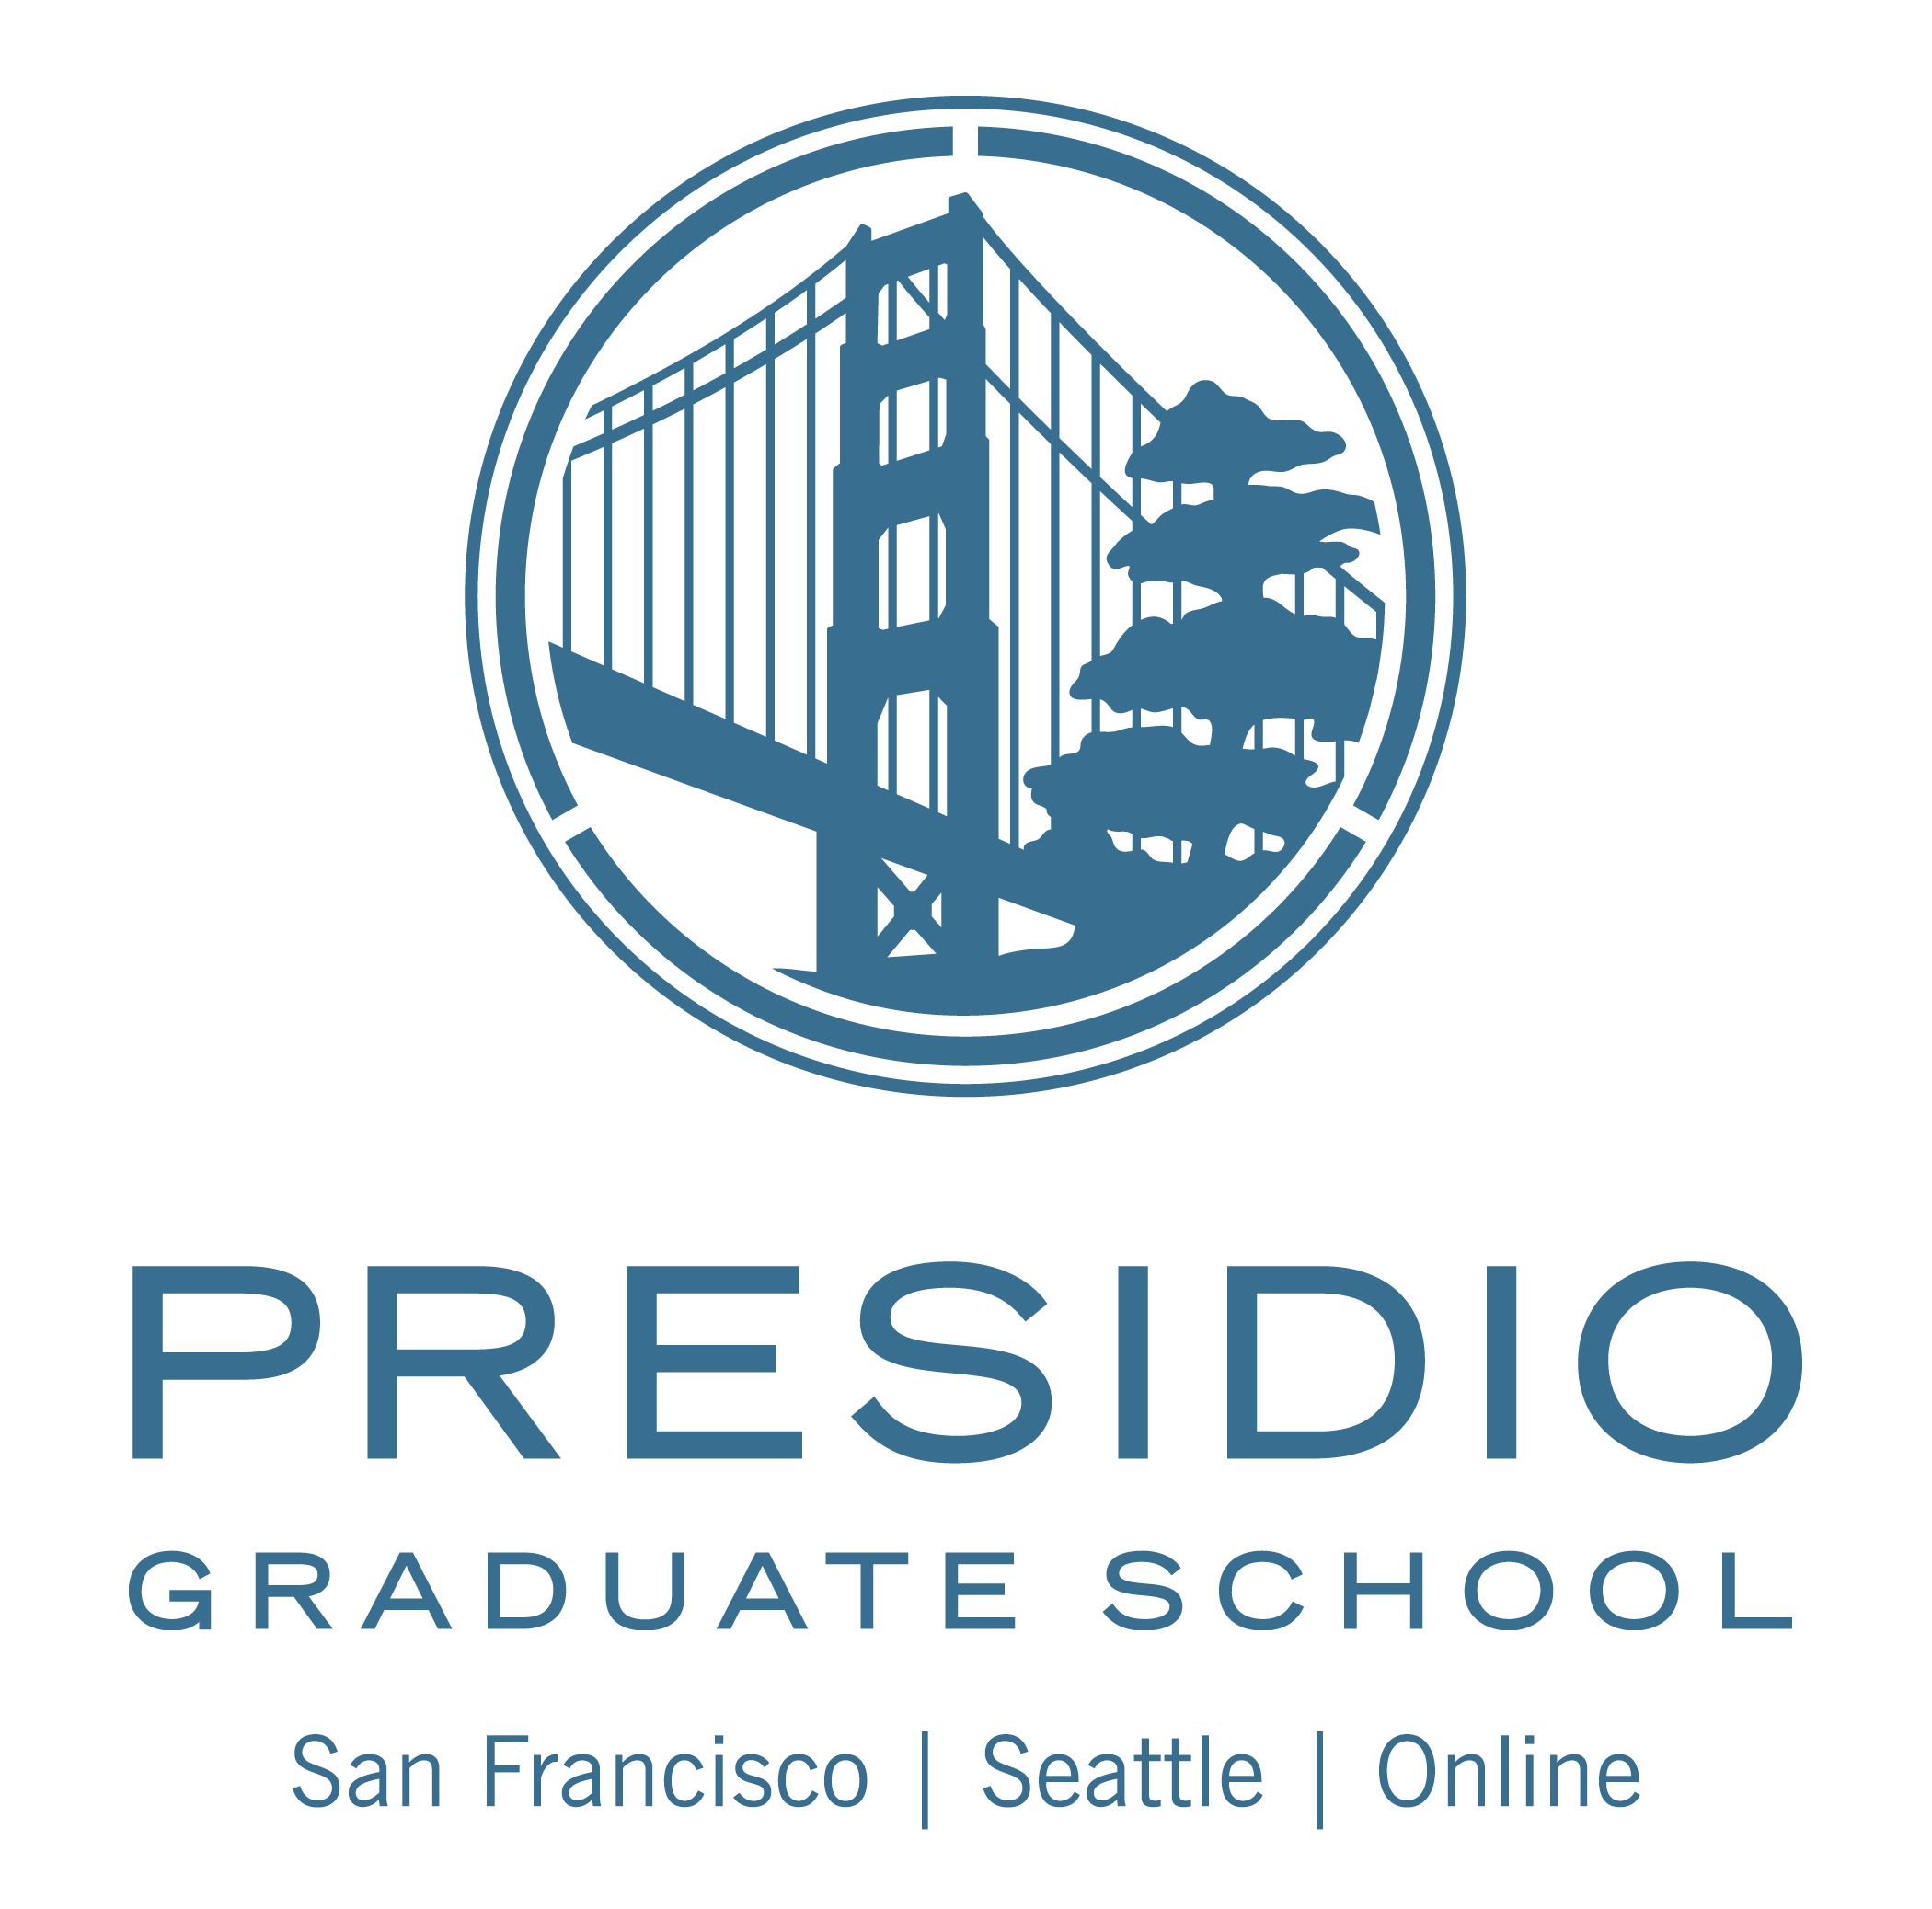 - Presidio Graduate School's innovative MBA, MPA, Dual Degree, and Certificate programs bridge the gap between commerce and the common good. PGS is deeply committed to ecological and social sustainability, which infuses our pedagogy, curriculum, and community. We prepare our learners to advance sustainability in businesses and organizations. As a leader in higher education, we seek to influence other universities to integrate sustainability into their program design. While at PGS, learners experience a parallel journey of transformational leadership development and personal growth. Students understand theory, develop skills, and gain the personal mastery needed to be instruments of the change they wish to see in the world.